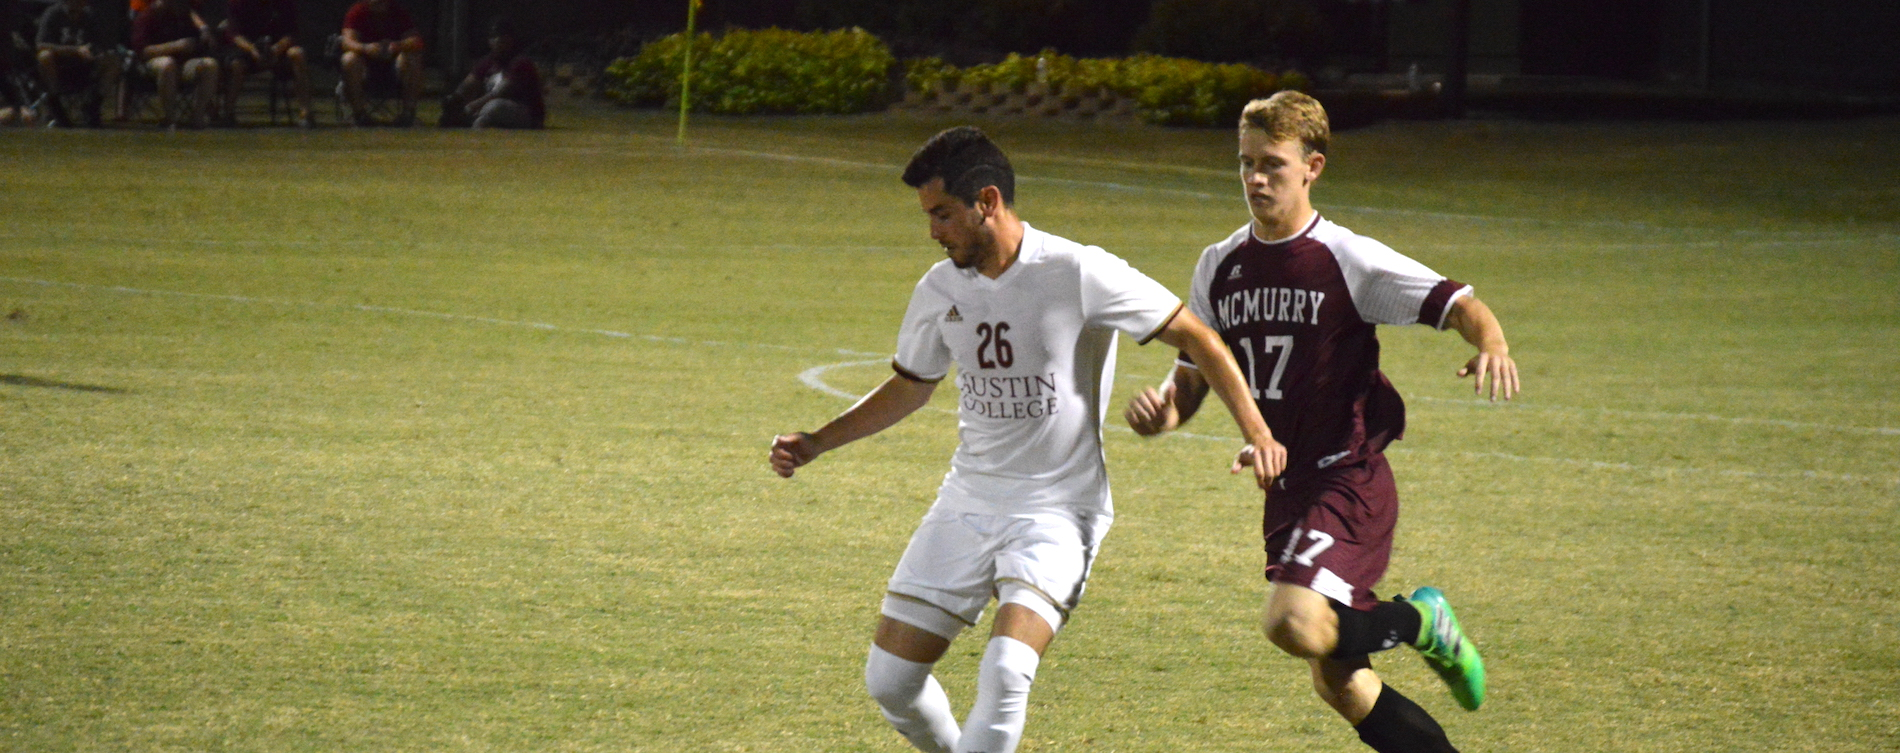 'Roos Battle to 1-1 Draw in Season Opener